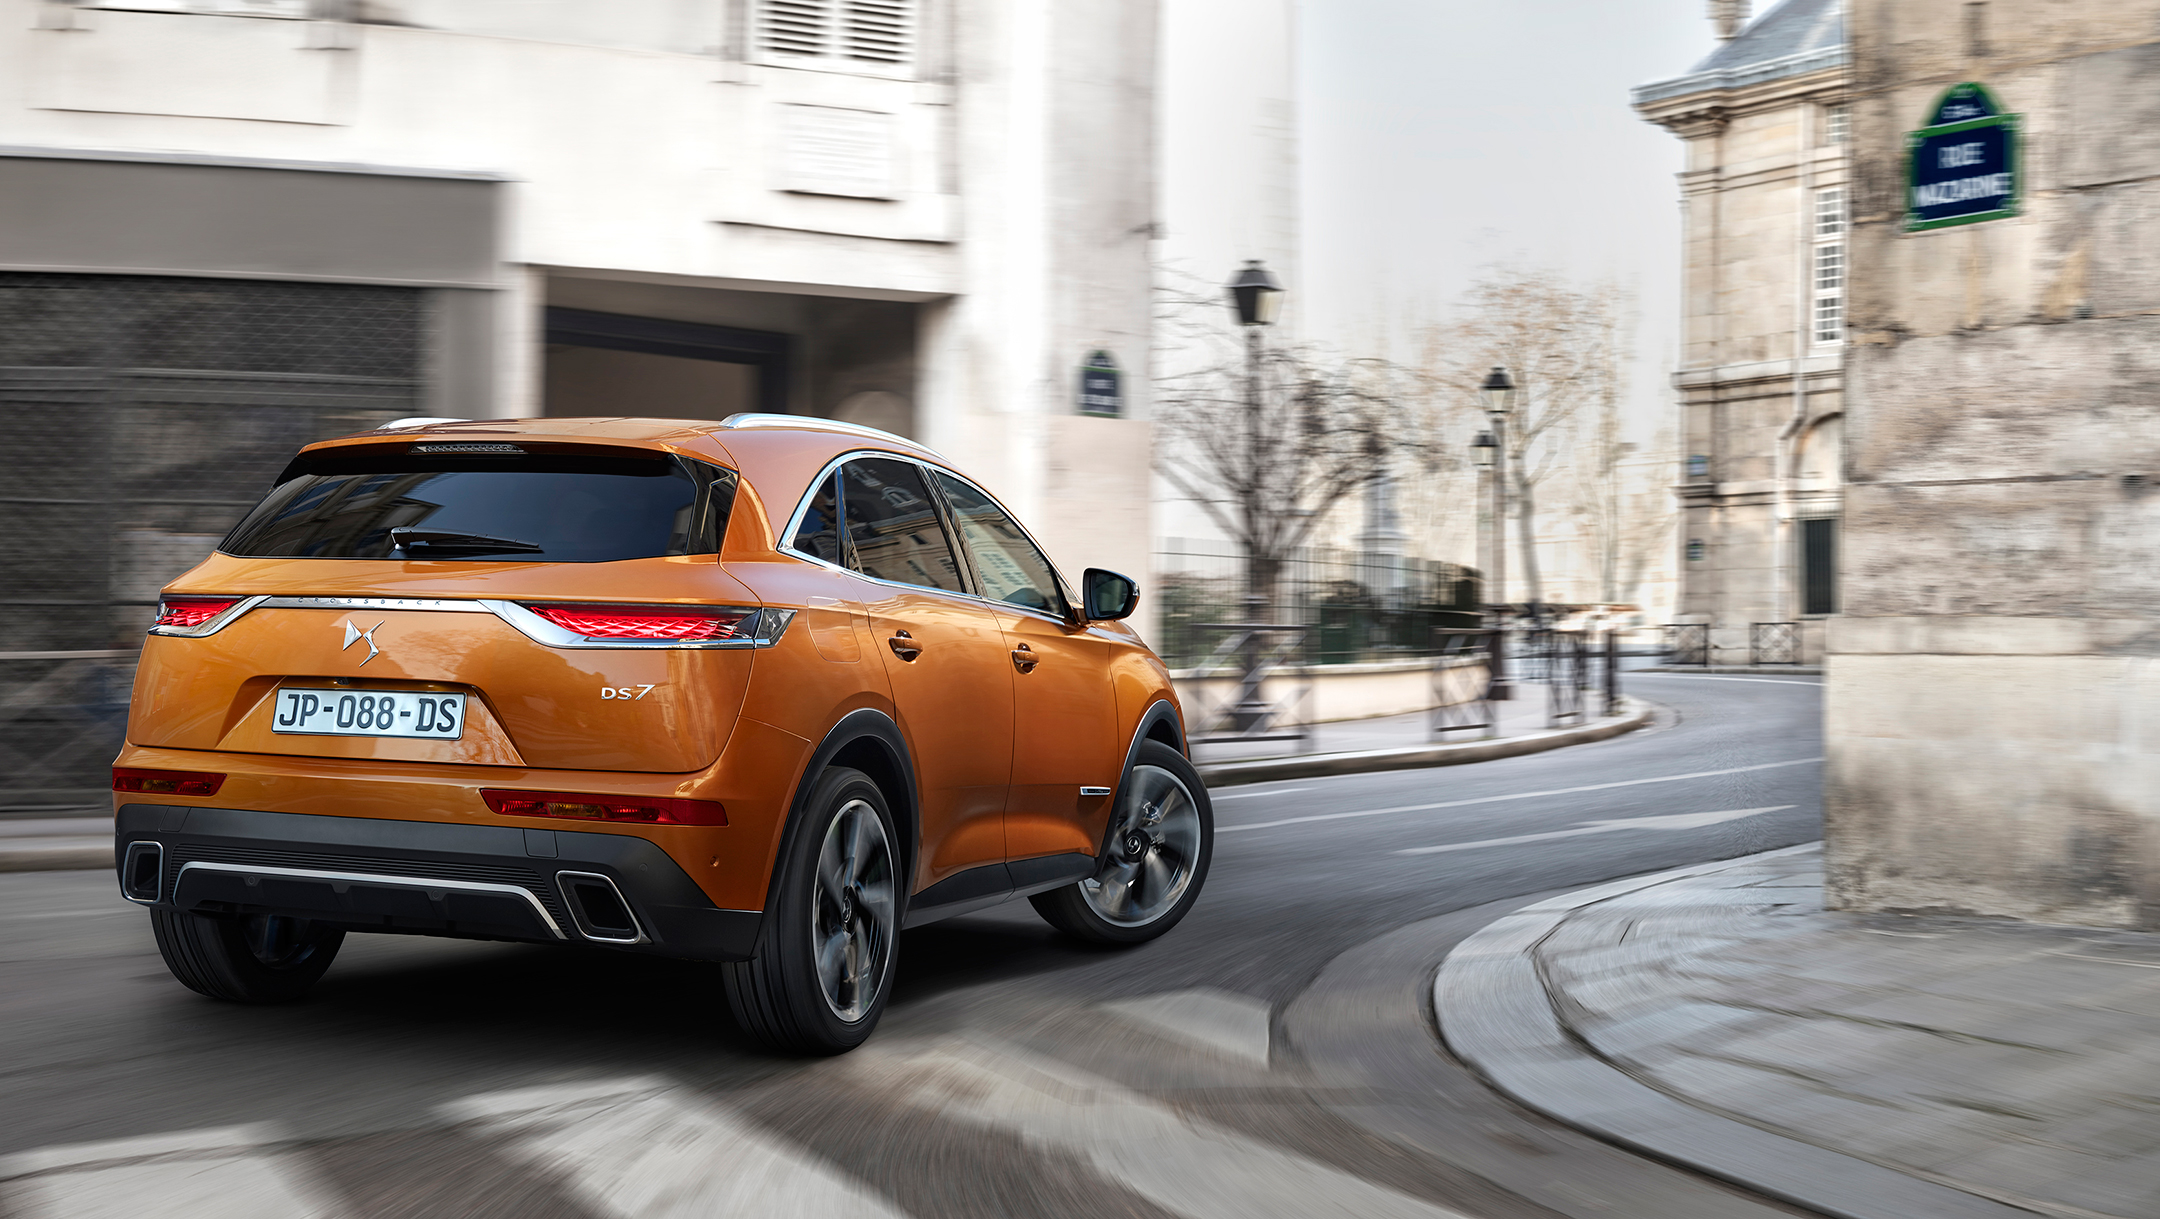 DS 7 CROSSBACK - 2017 - arrière / rear - photo rue de Paris